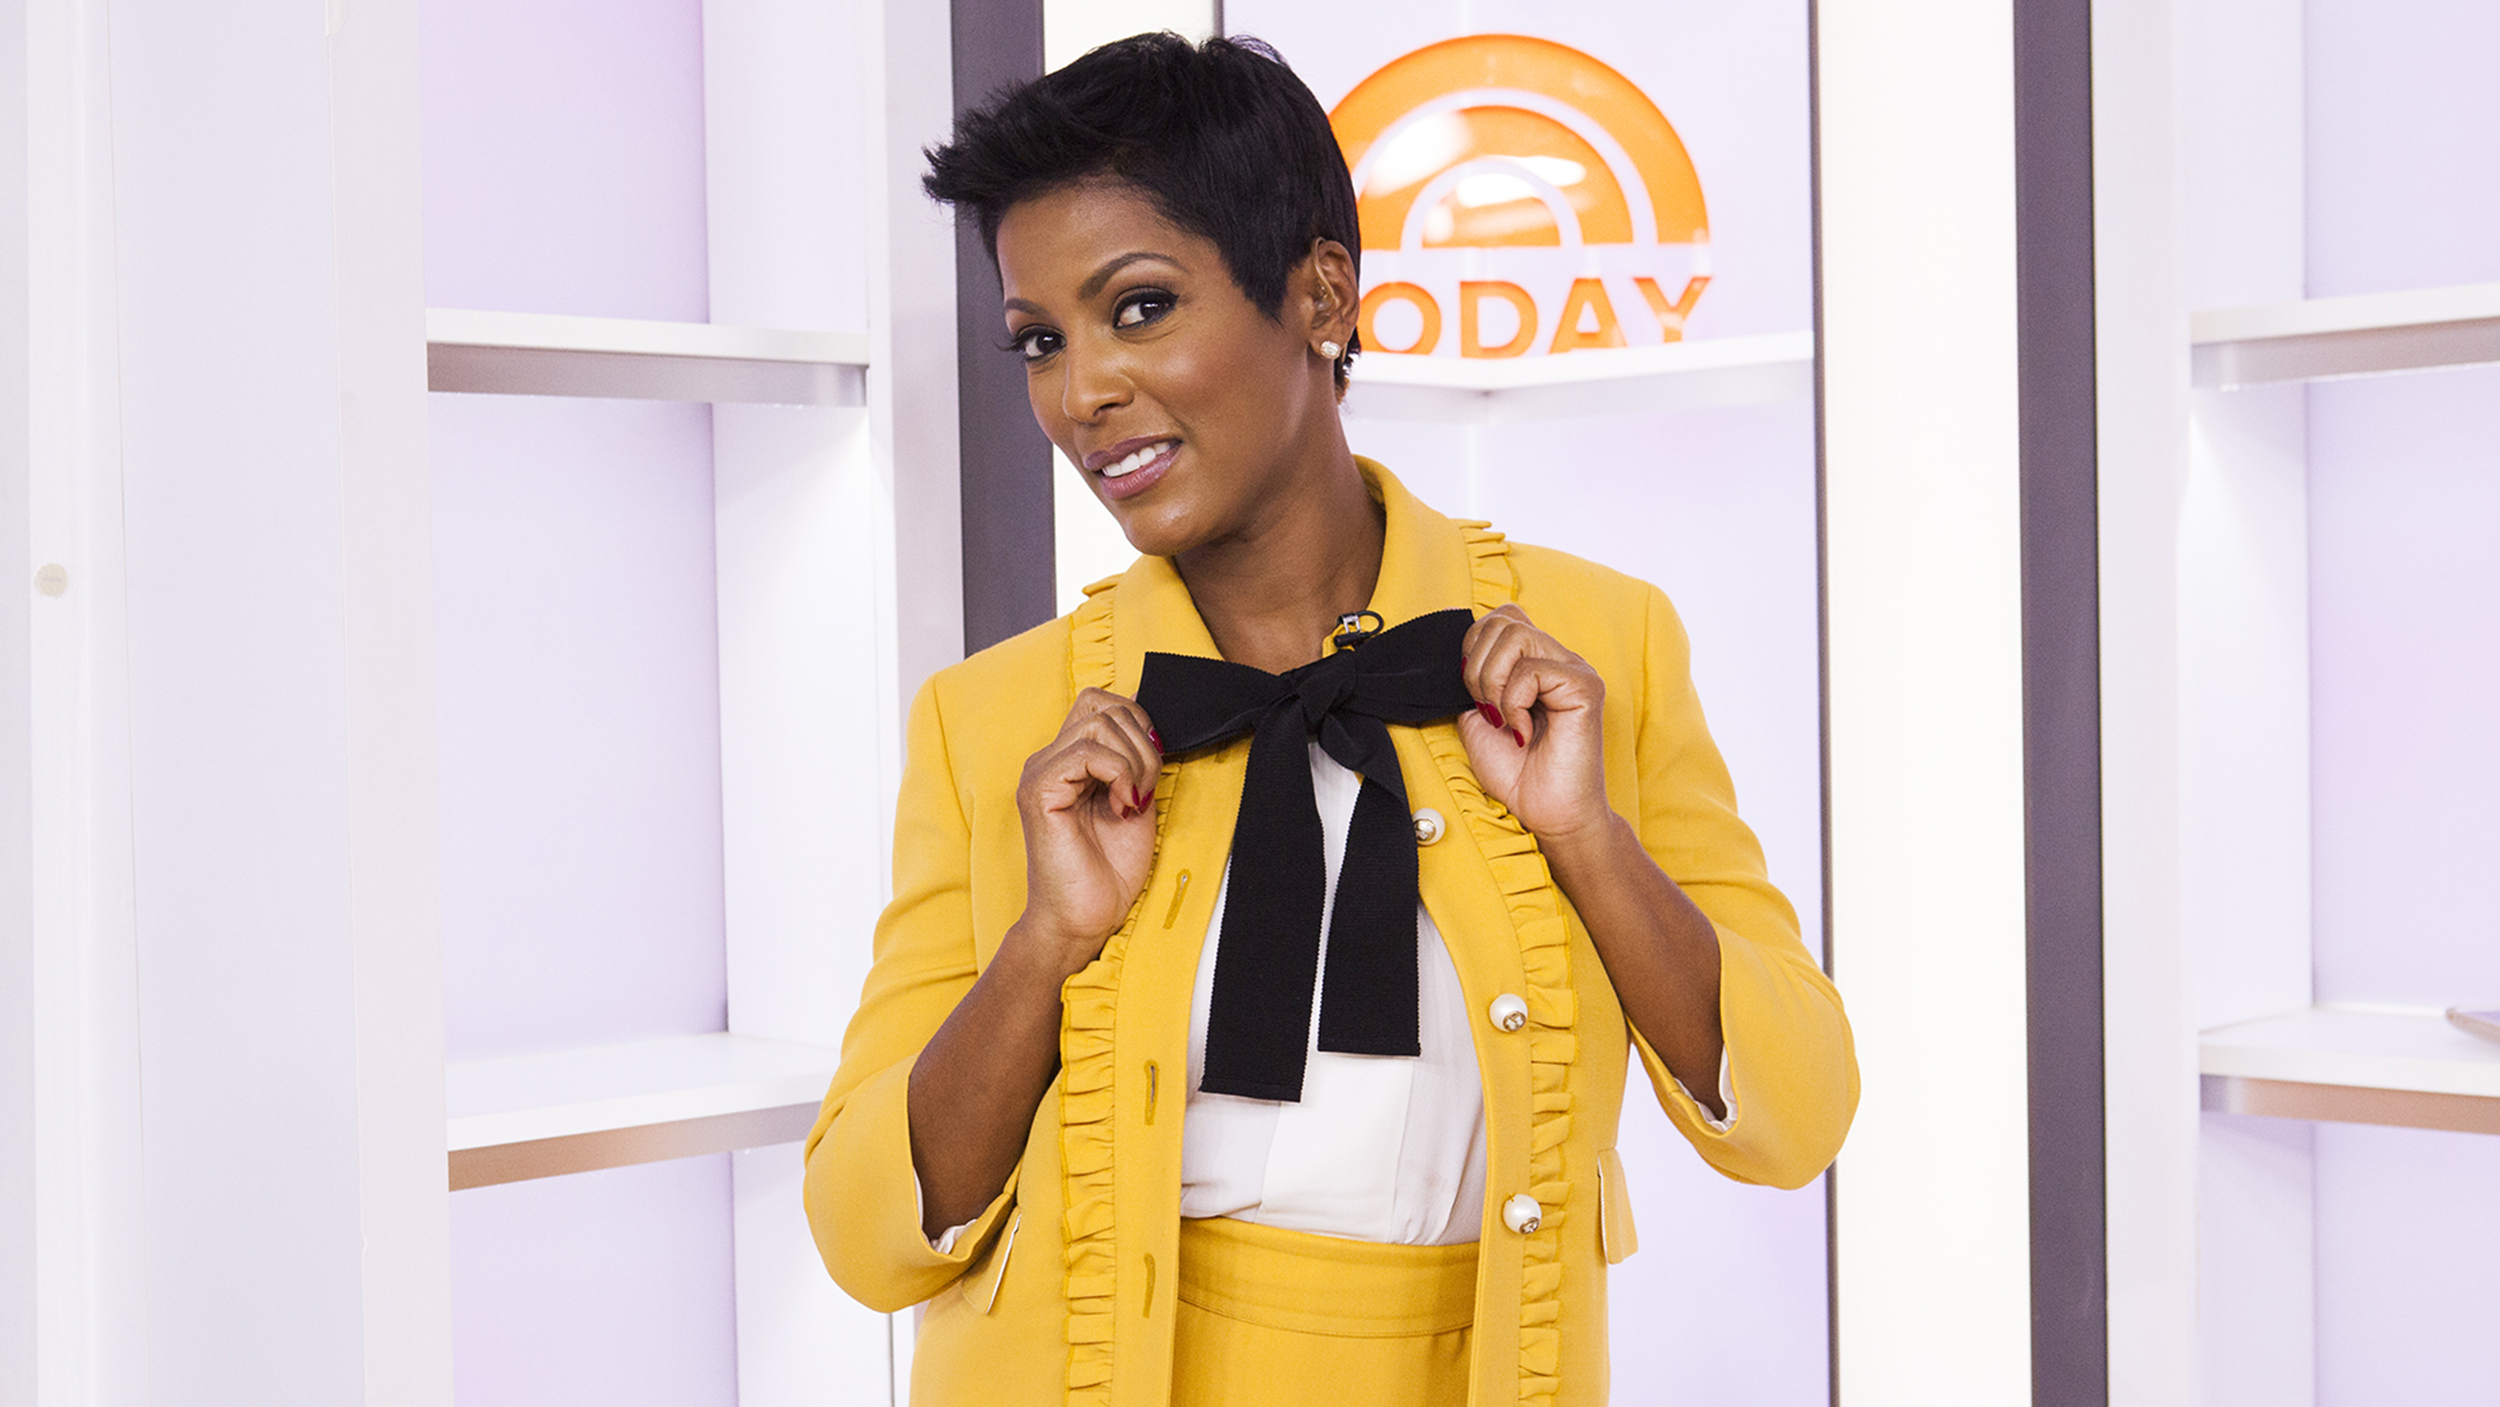 Tamron Hall - hottest news anchors in the world